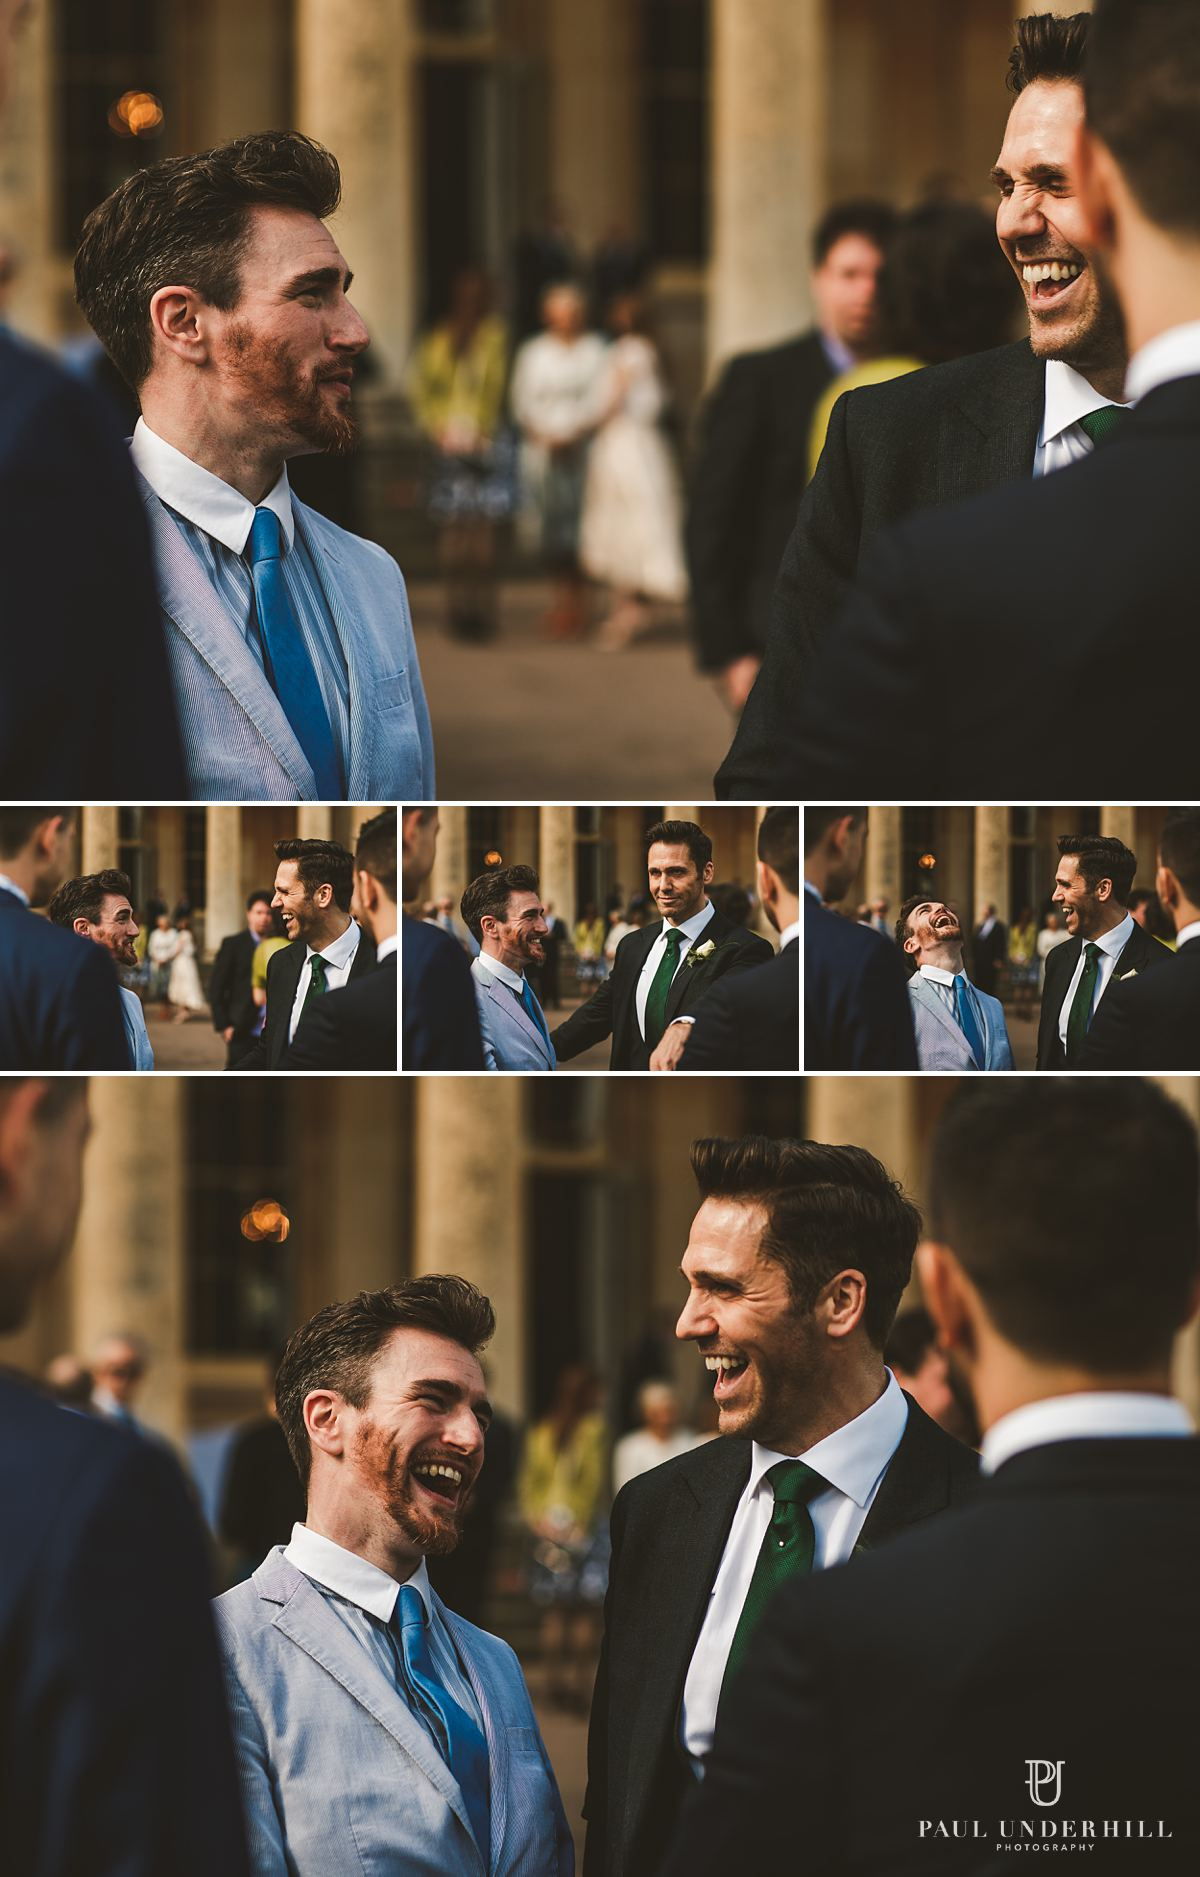 Fun moments gay wedding photography